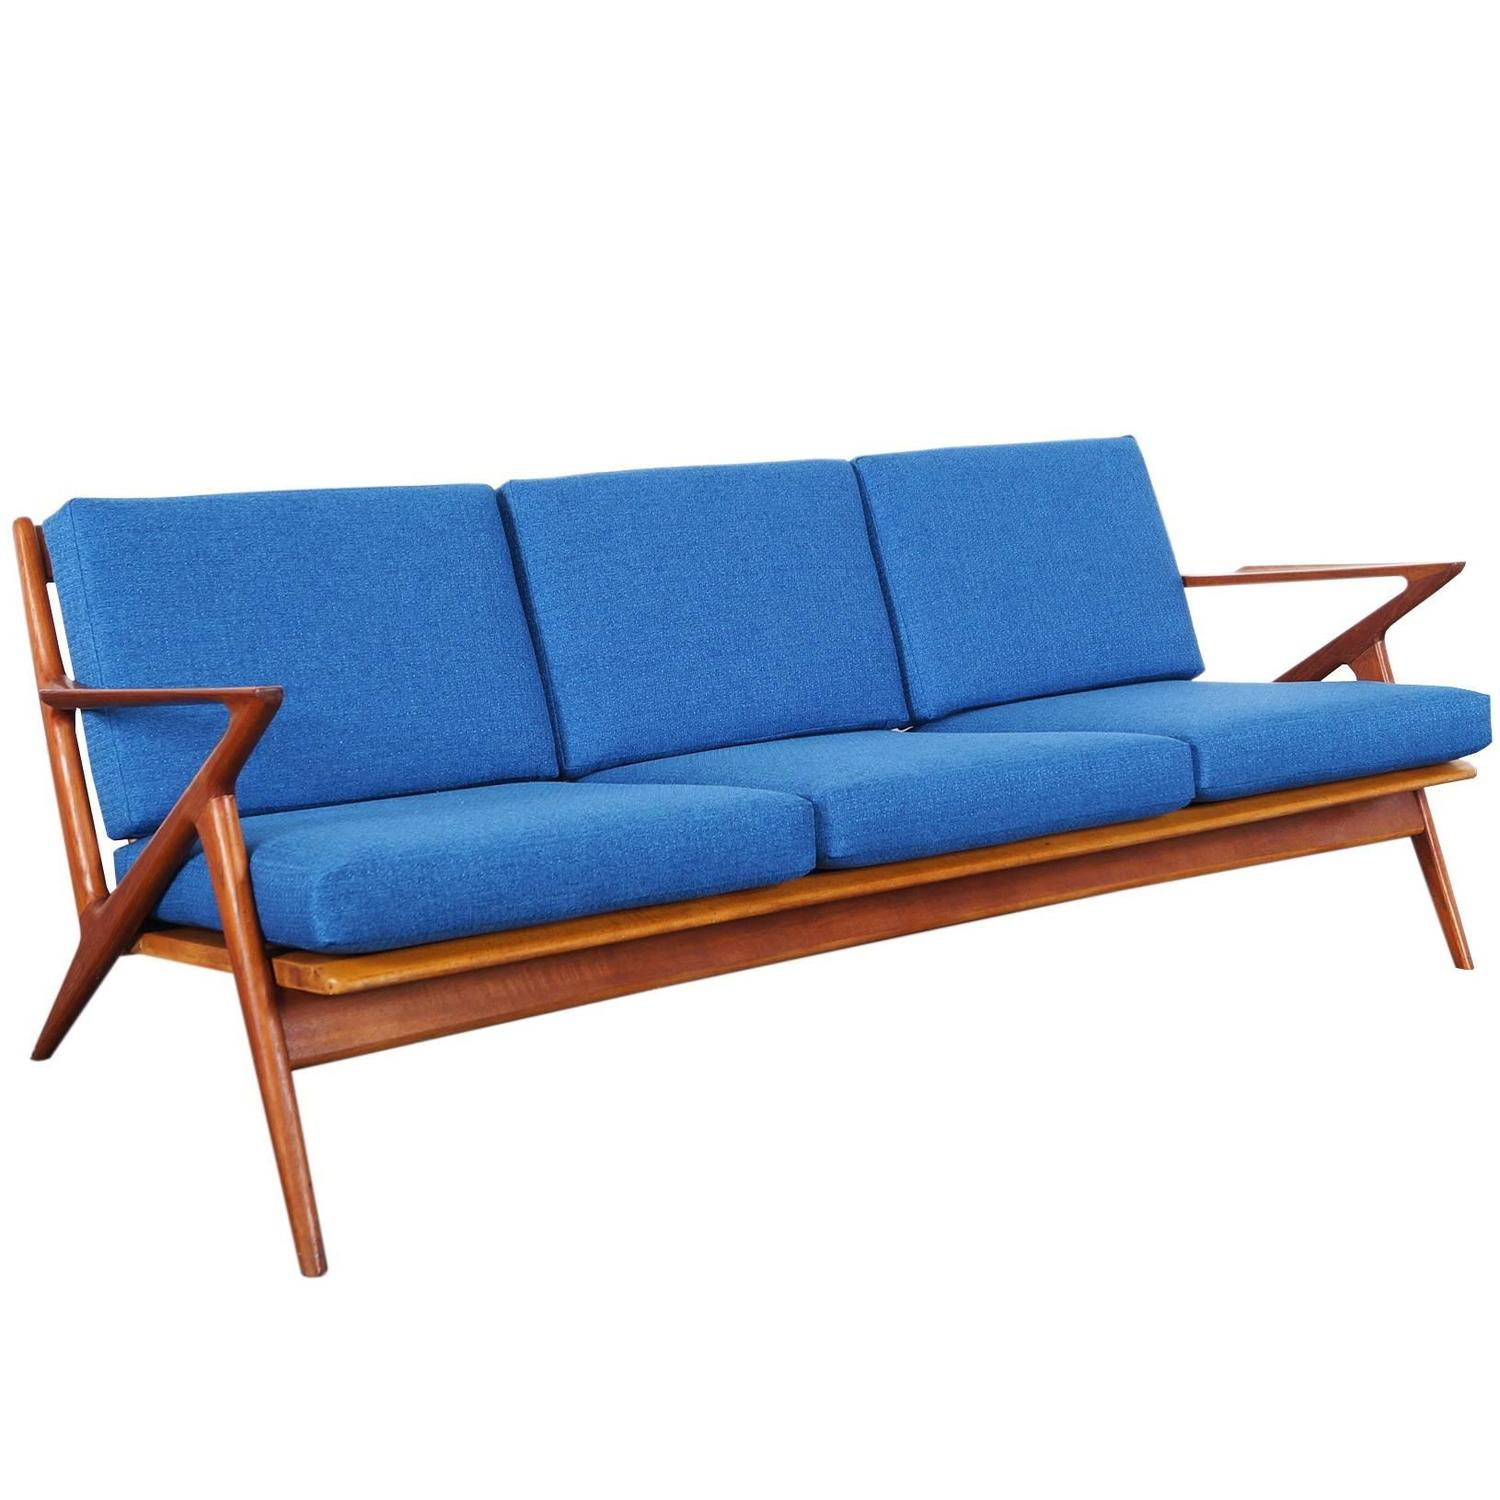 Danish modern sofa good danish modern sofa 17 with for Danish modern reproduction